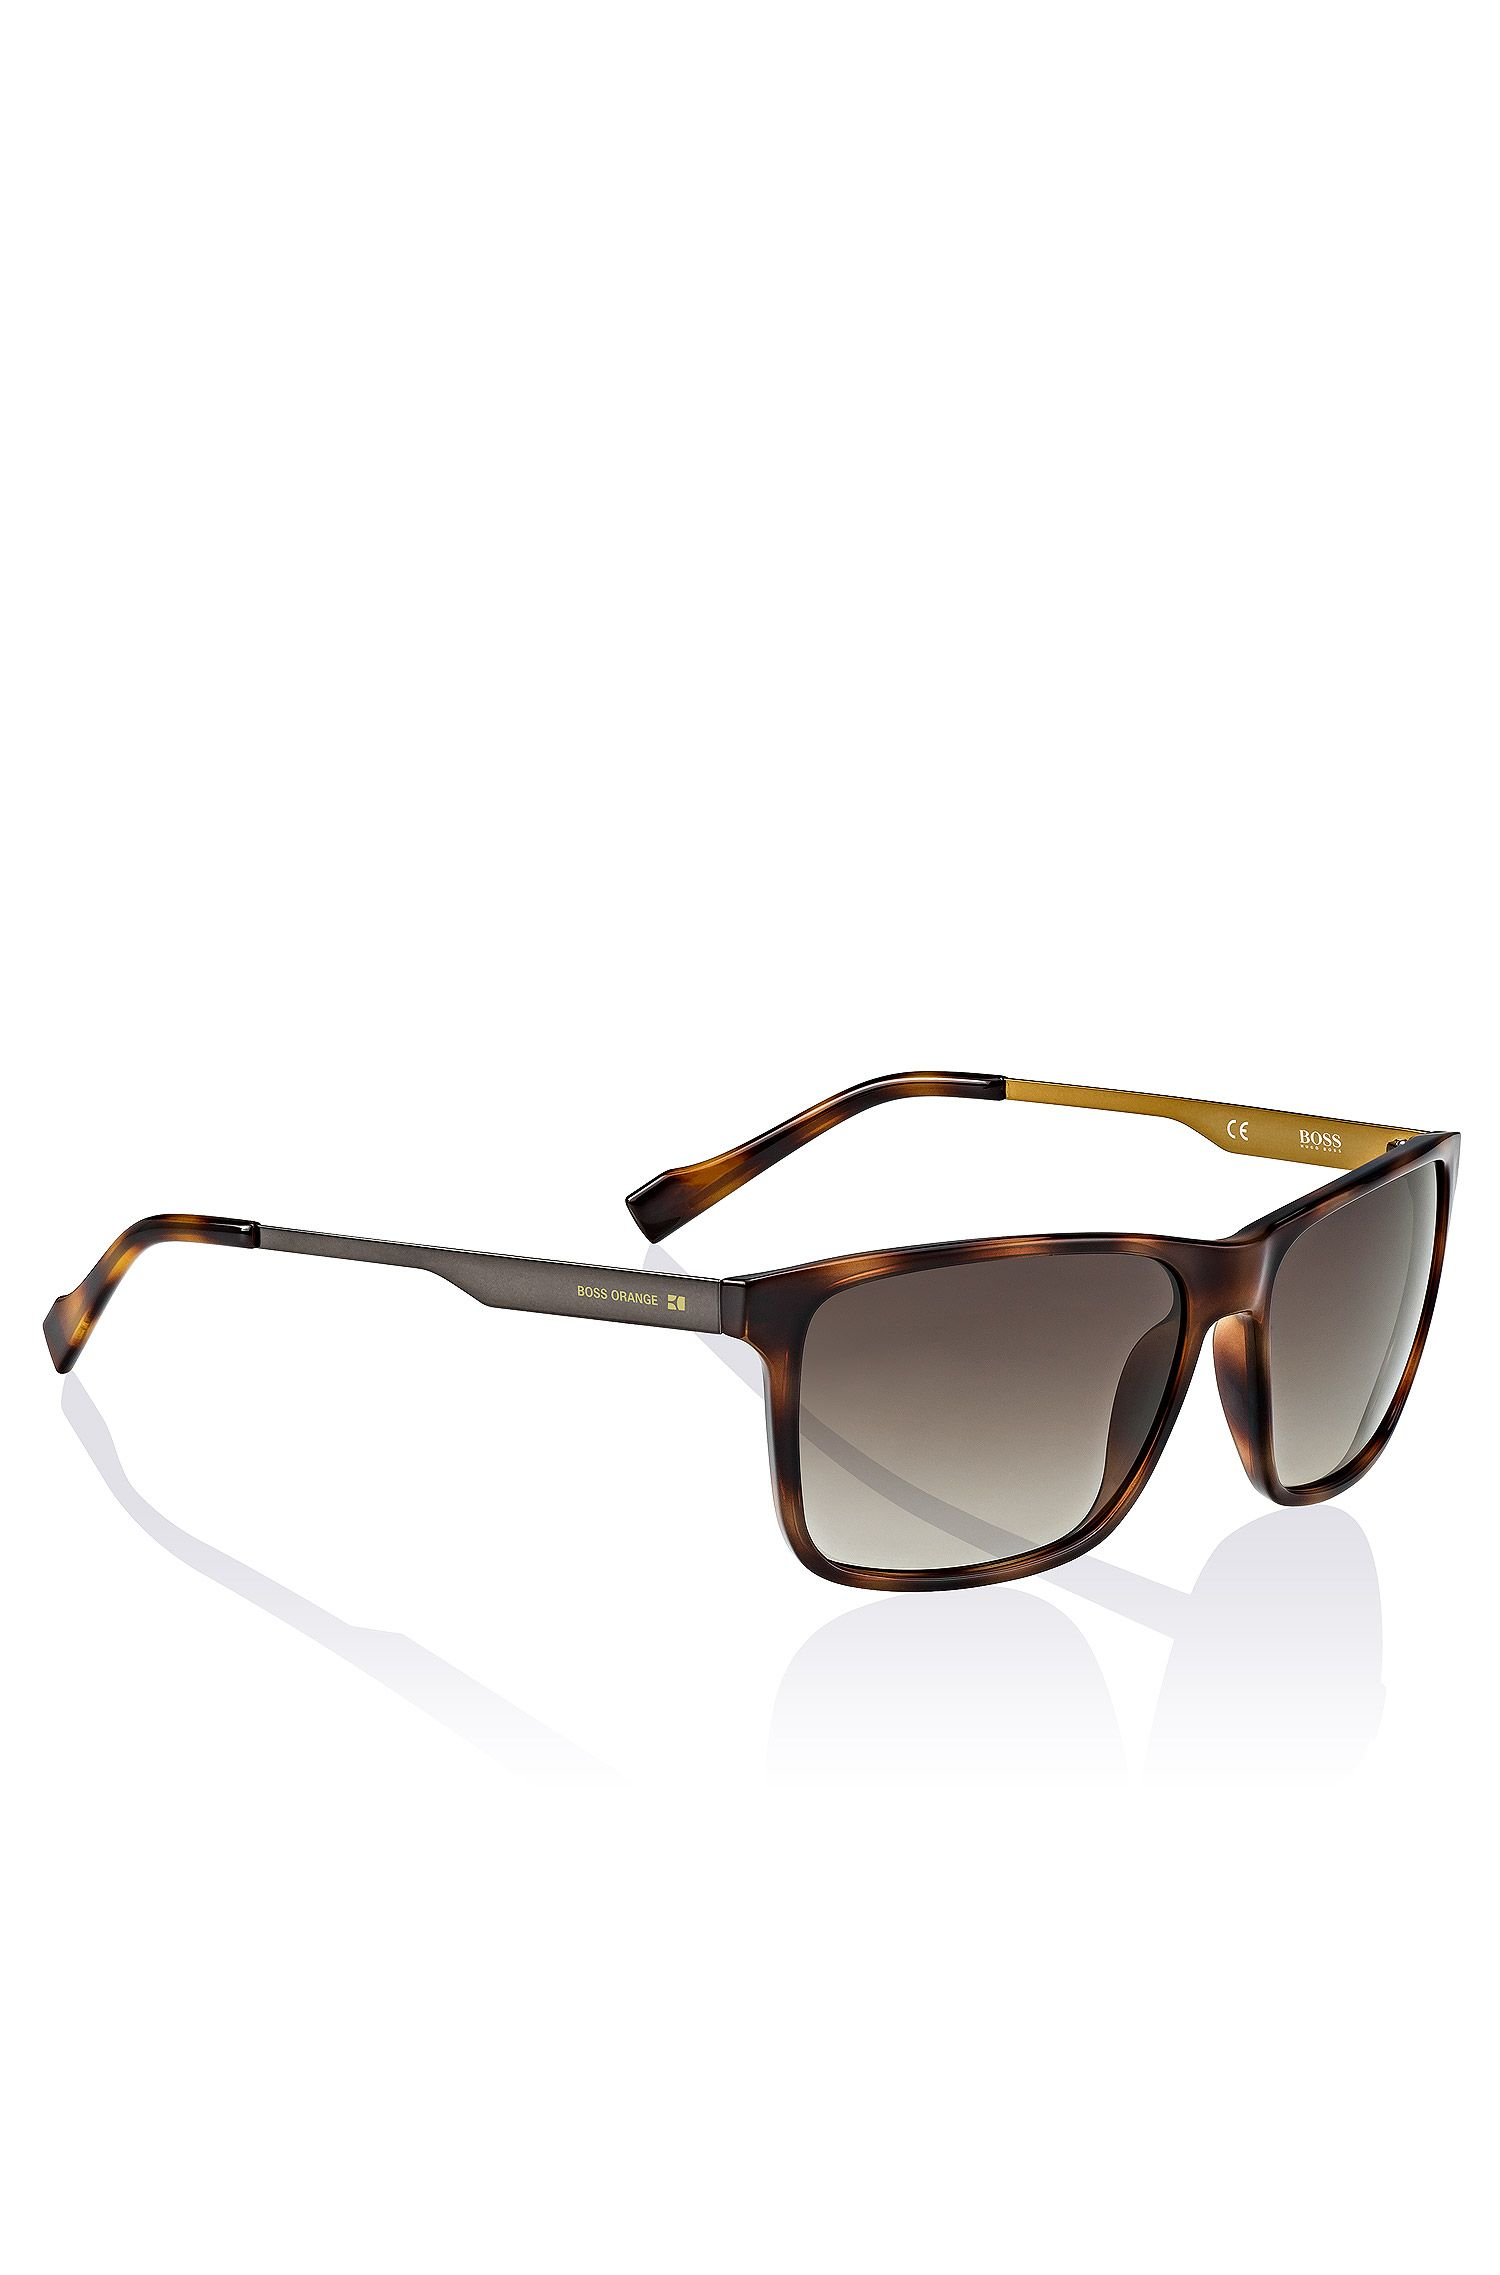 Sunglasses 'BO 0163/S' in stainless steel